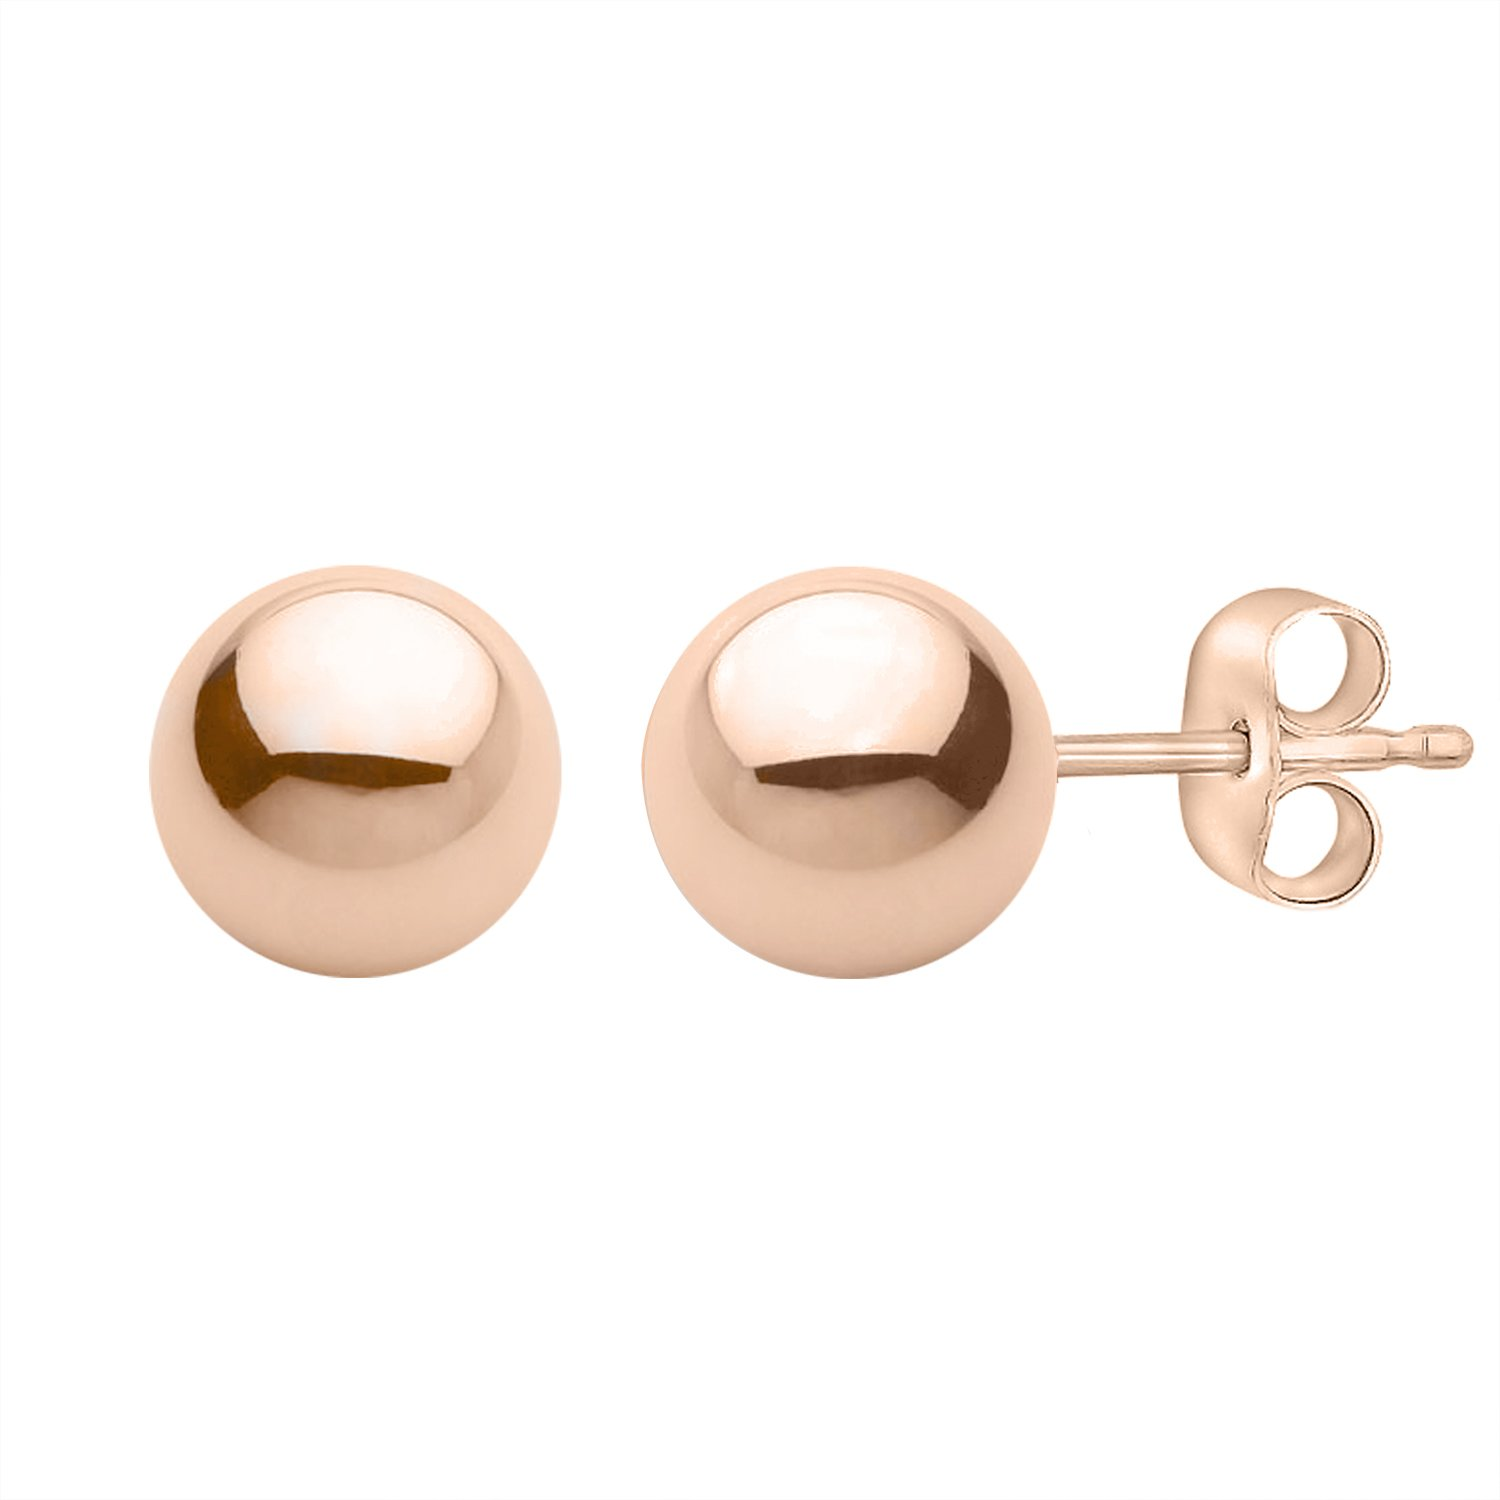 PARIKHS Rose Gold Ball Earrings High Polished 8MM with 14k Rose Gold Pushbacks